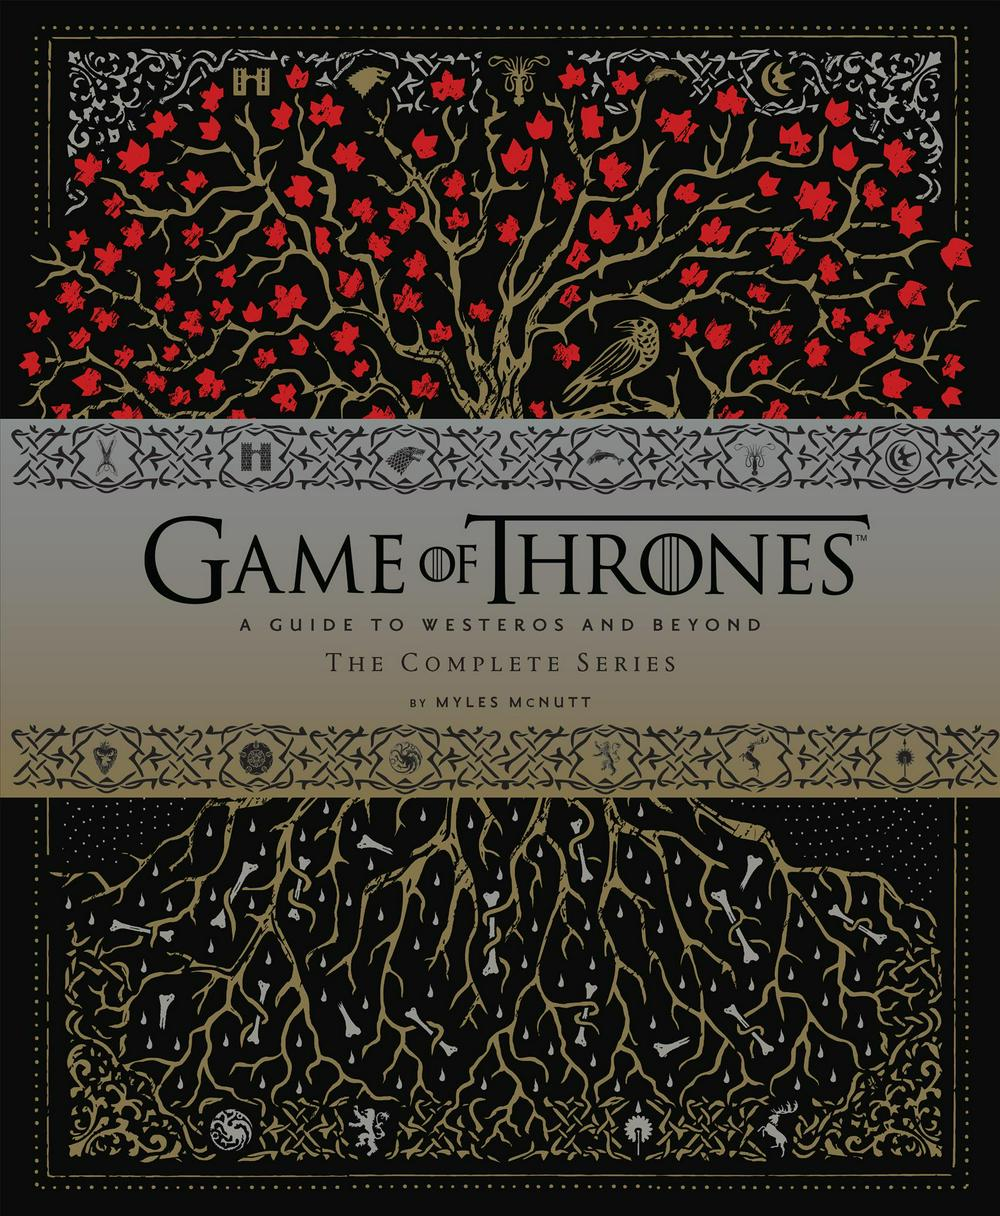 Game of Thrones: A Viewer's Guide to the World of Westeros and Beyond by Myles McNutt, ISBN: 9781452147321